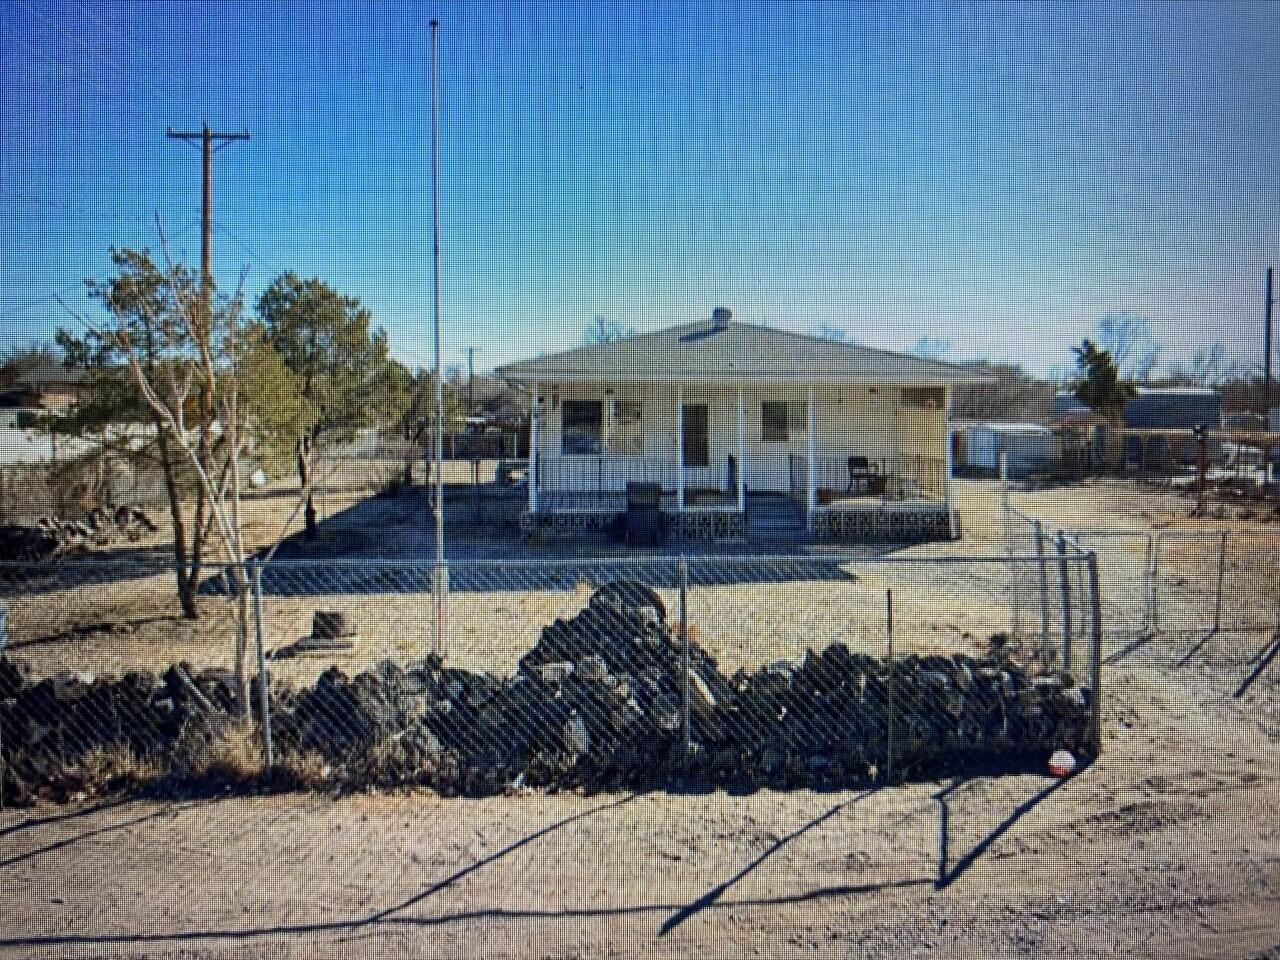 This home is your next perfect opportunity for a flip or fix up home. Home is 2 bedrooms 2 bath with a possibility of a 3rd bedroom. Backyard access possible.